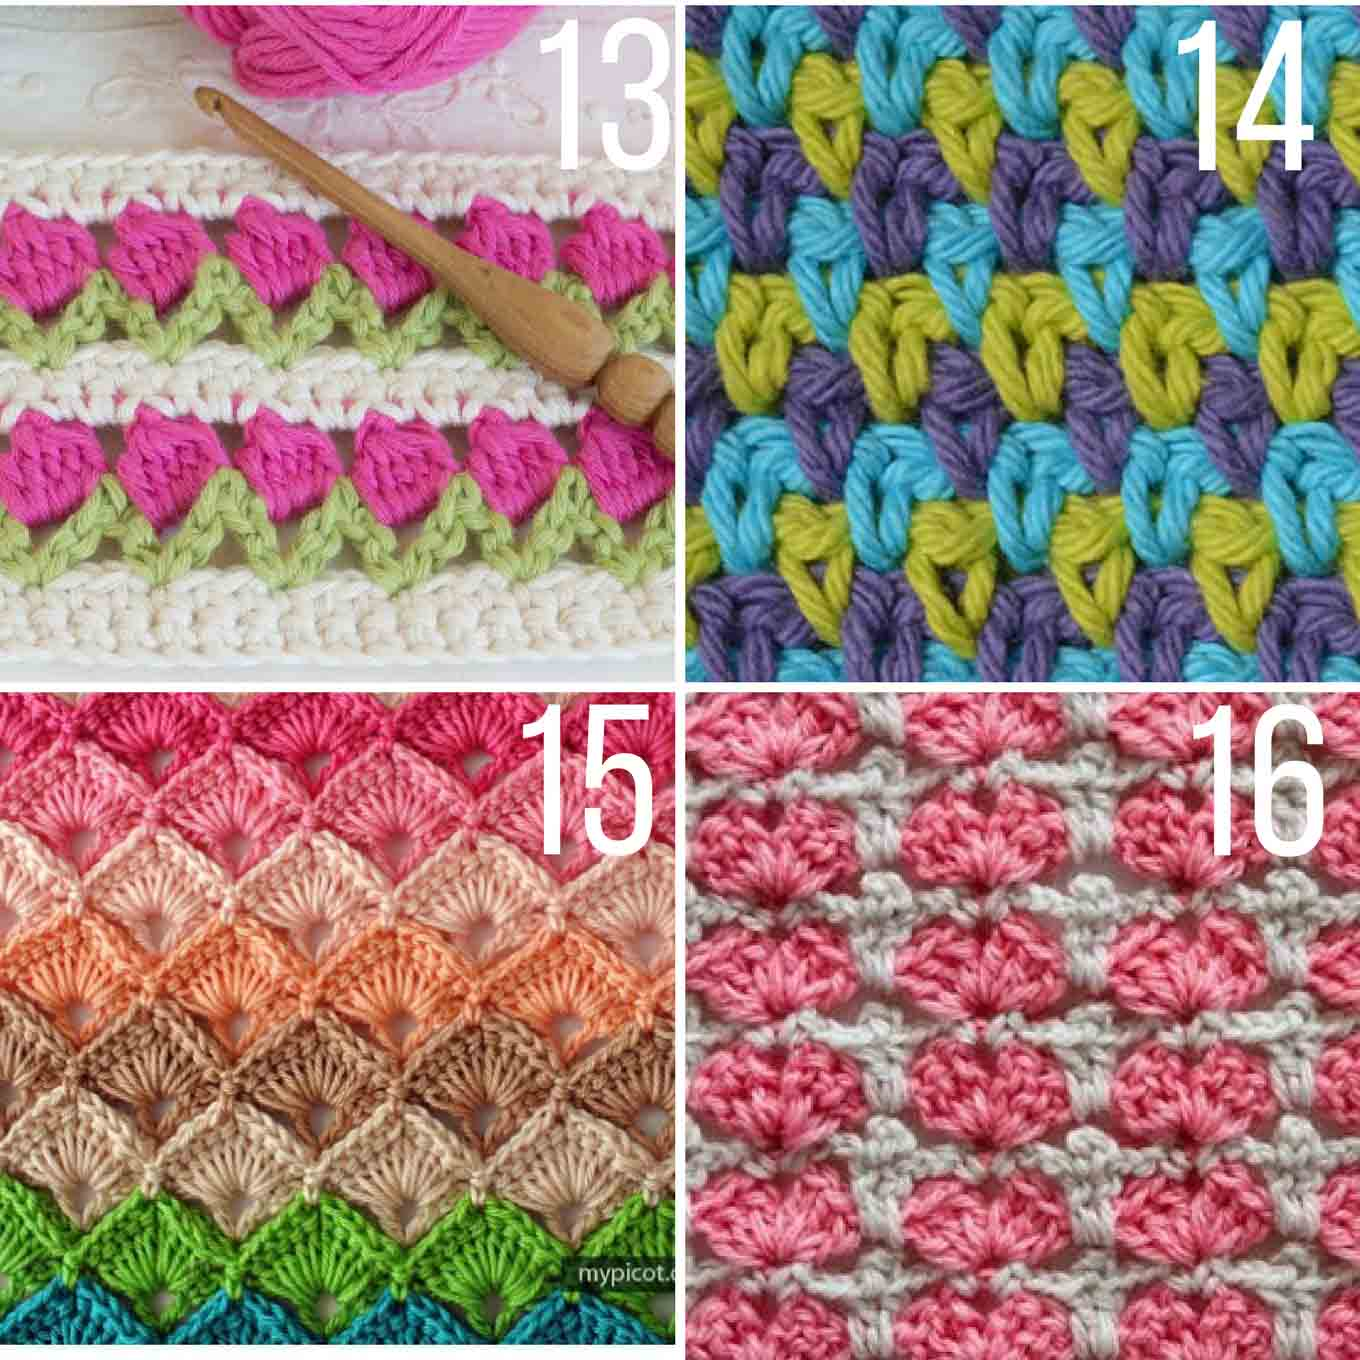 Gorgeous crochet stitch tutorials using many colors of yarn in one pattern.